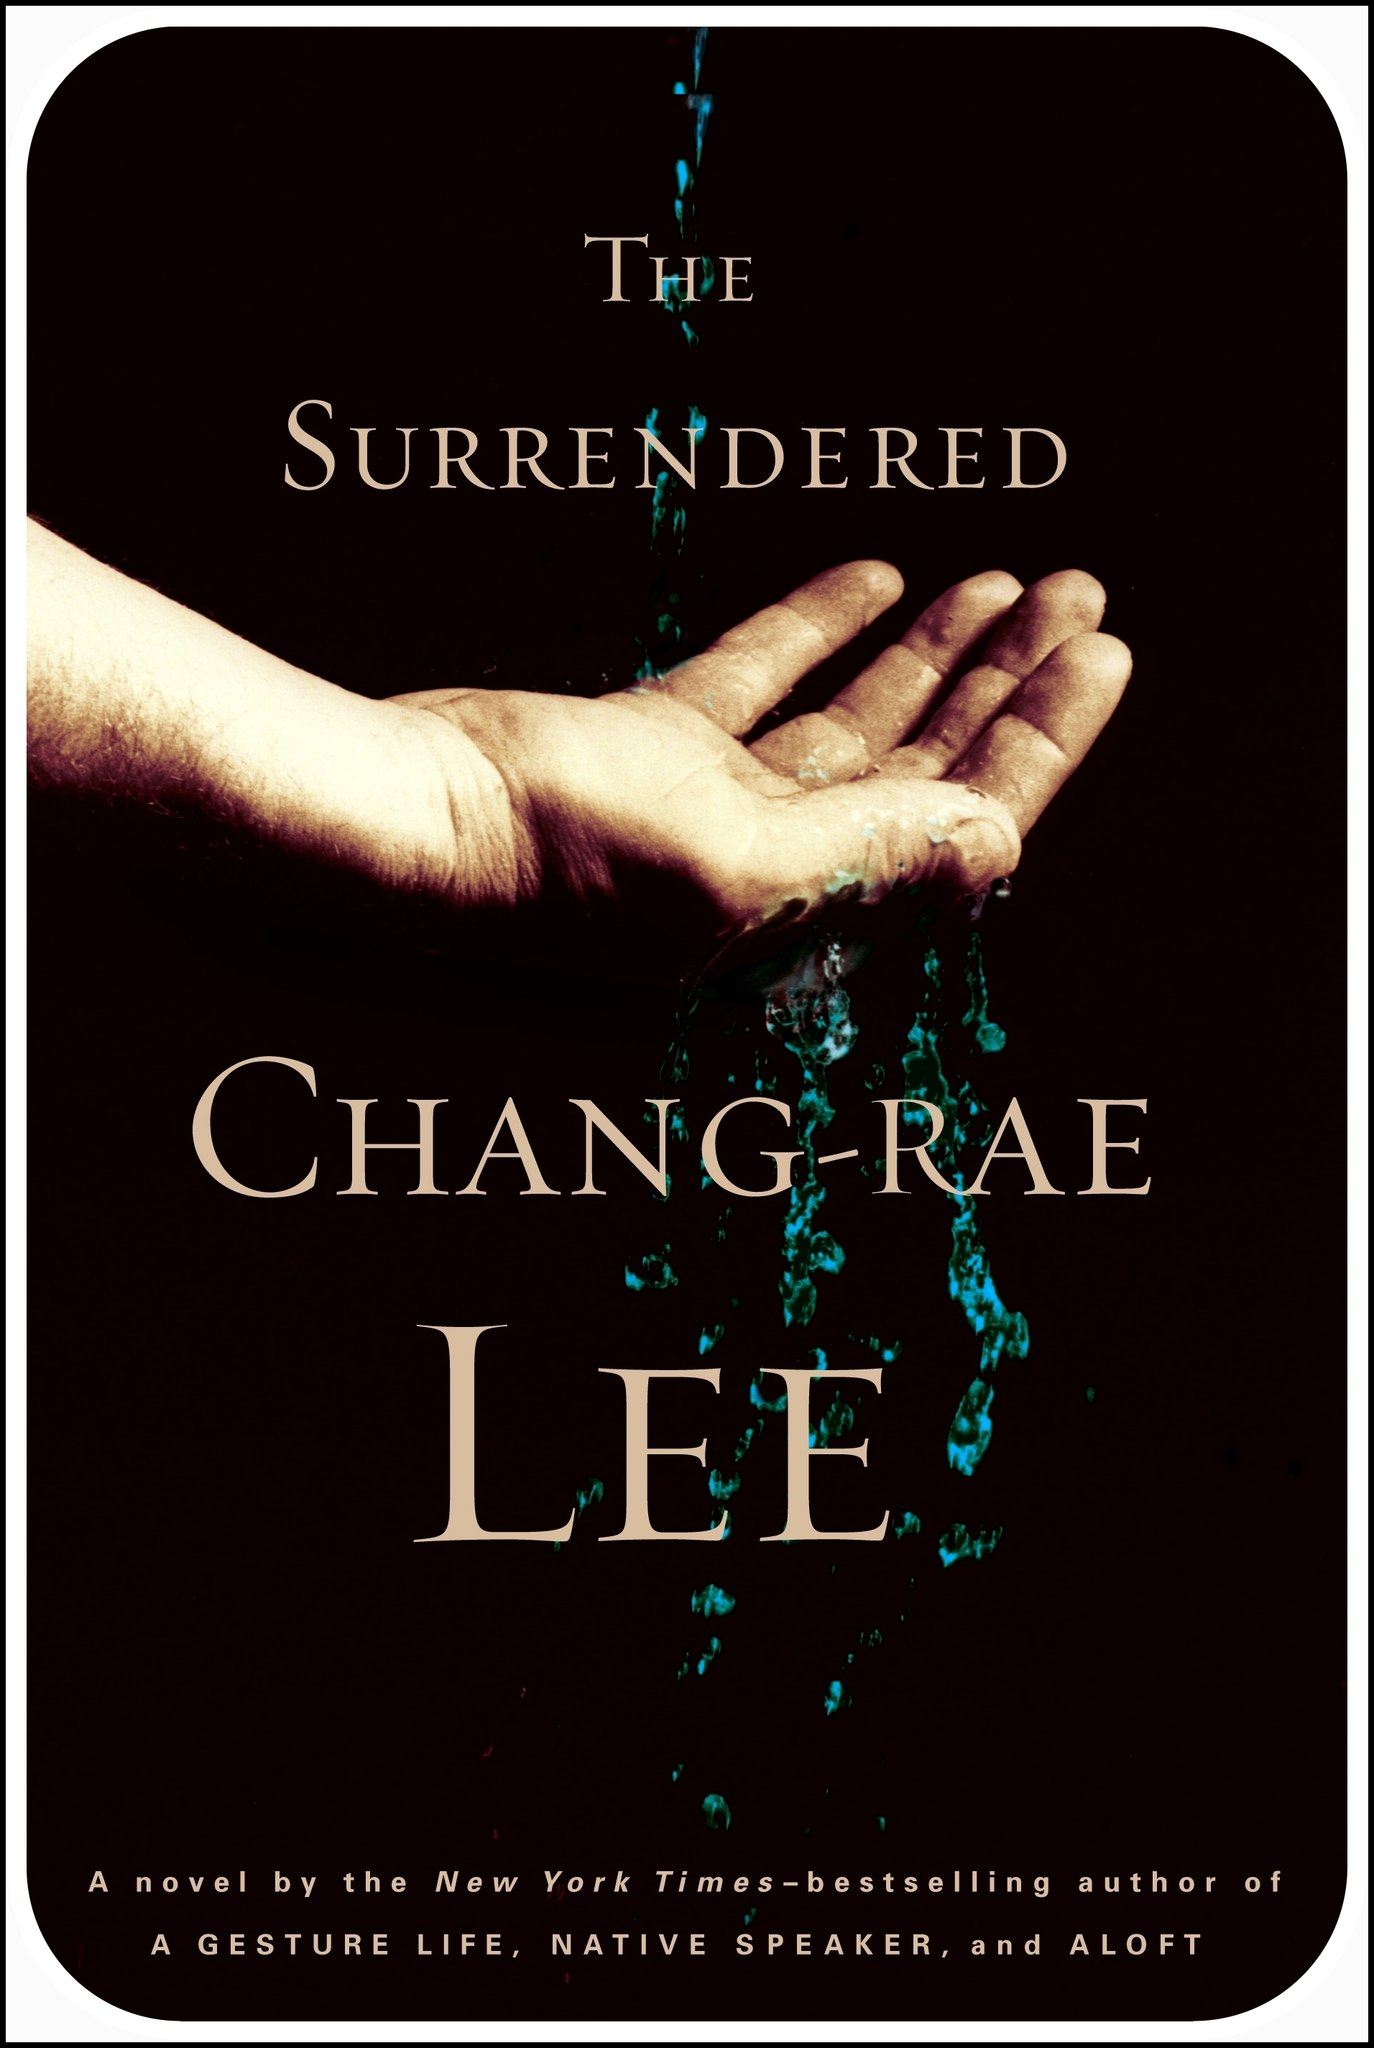 Chang-Rae Lee-The Surrendered